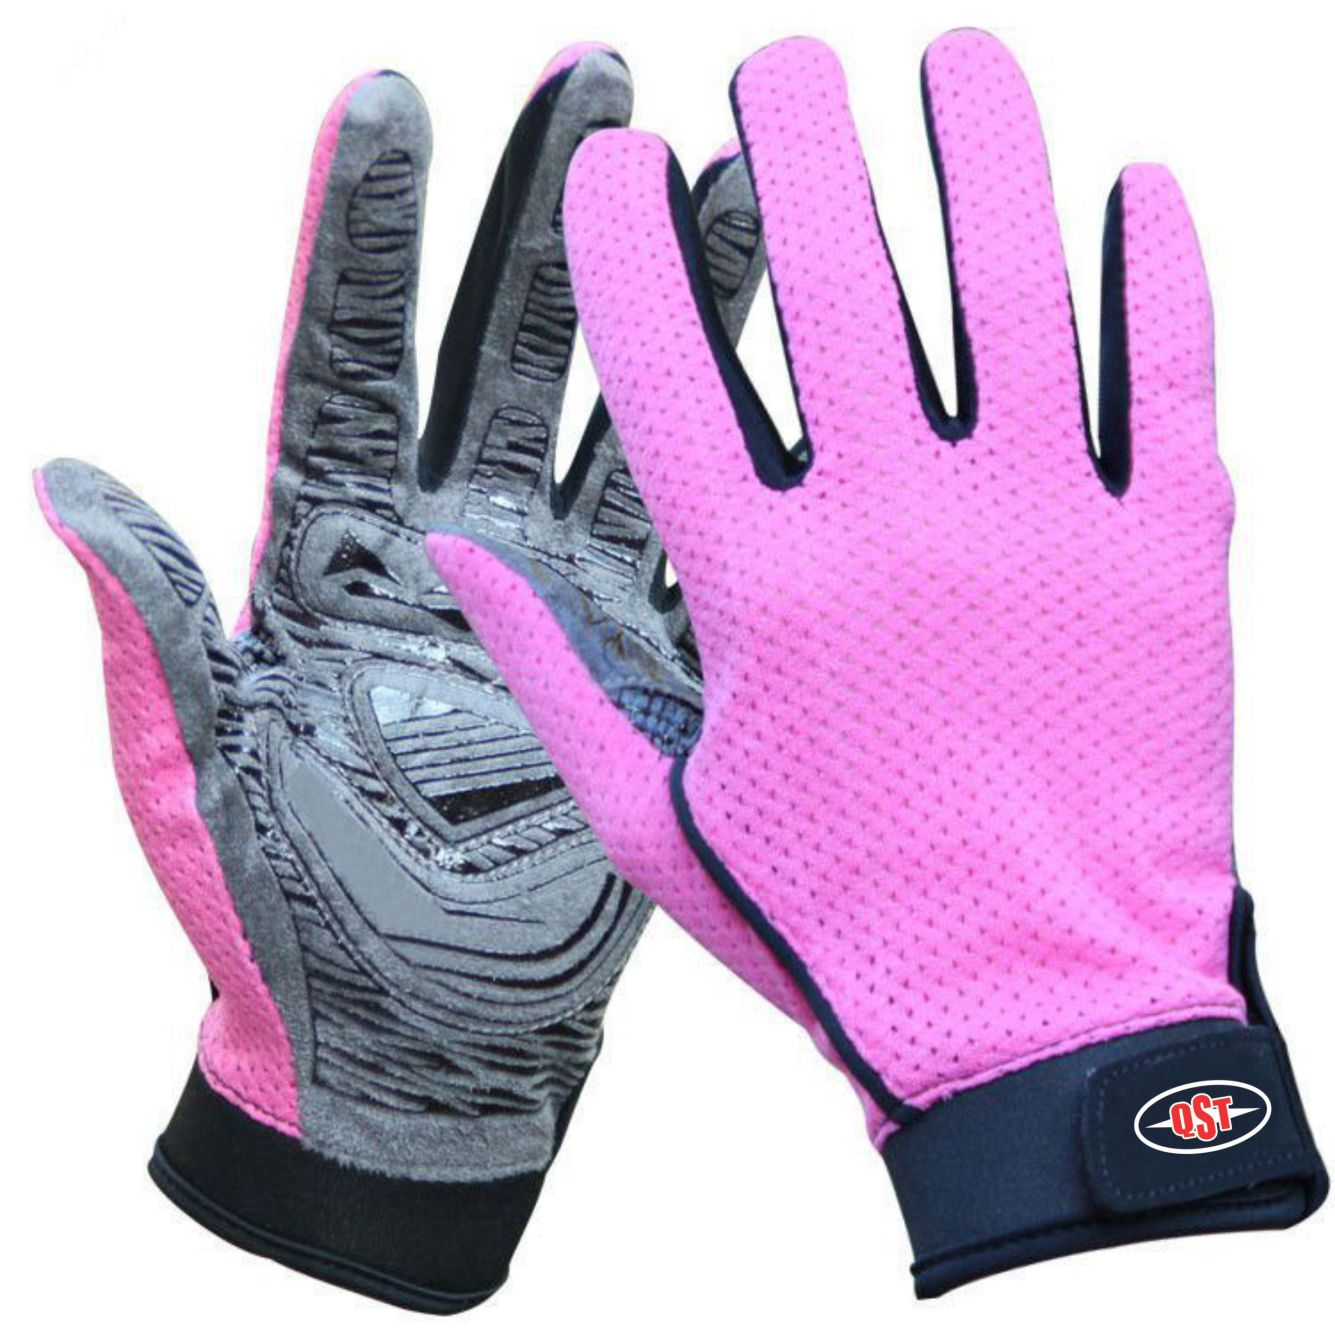 Crossfit Full finger Gloves - ACS-1569